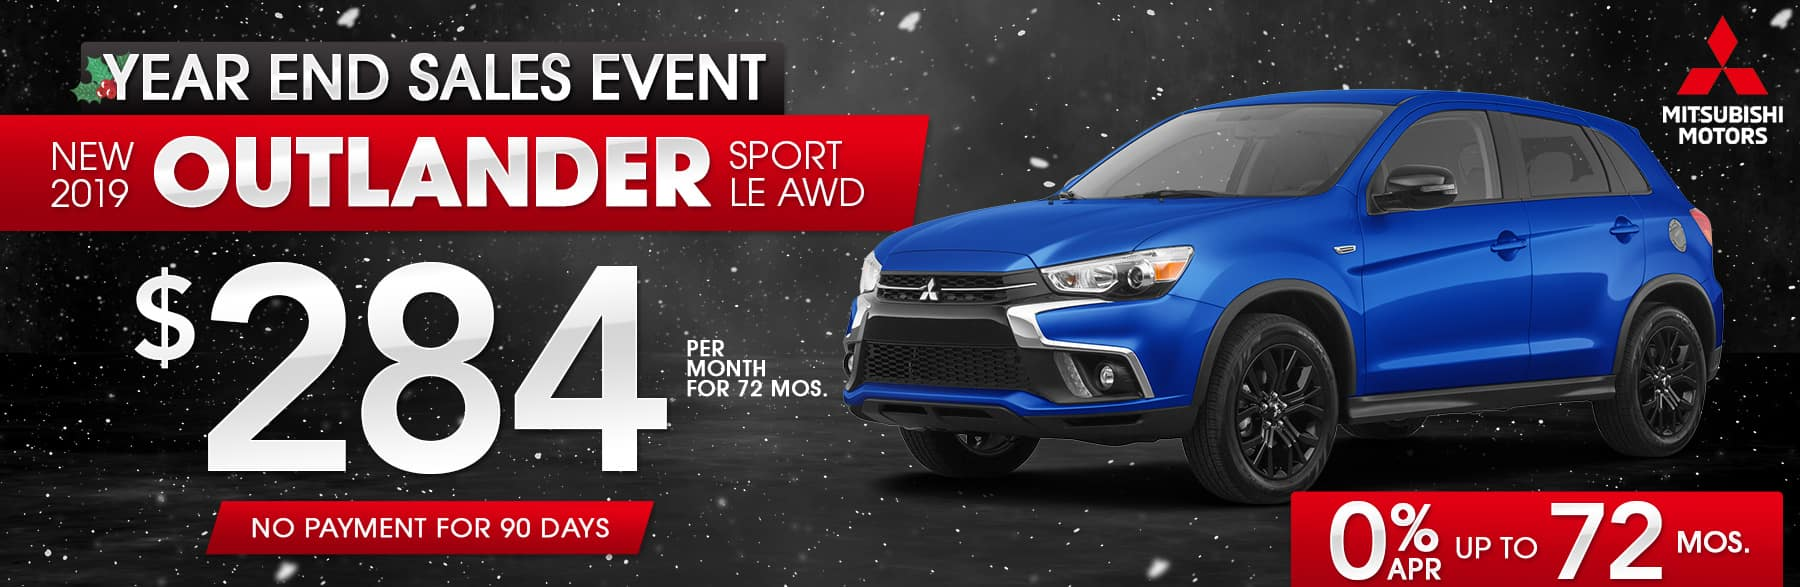 Jeep Dealers Mn >> Mitsubishi Dealer In Inver Grove Heights Mn